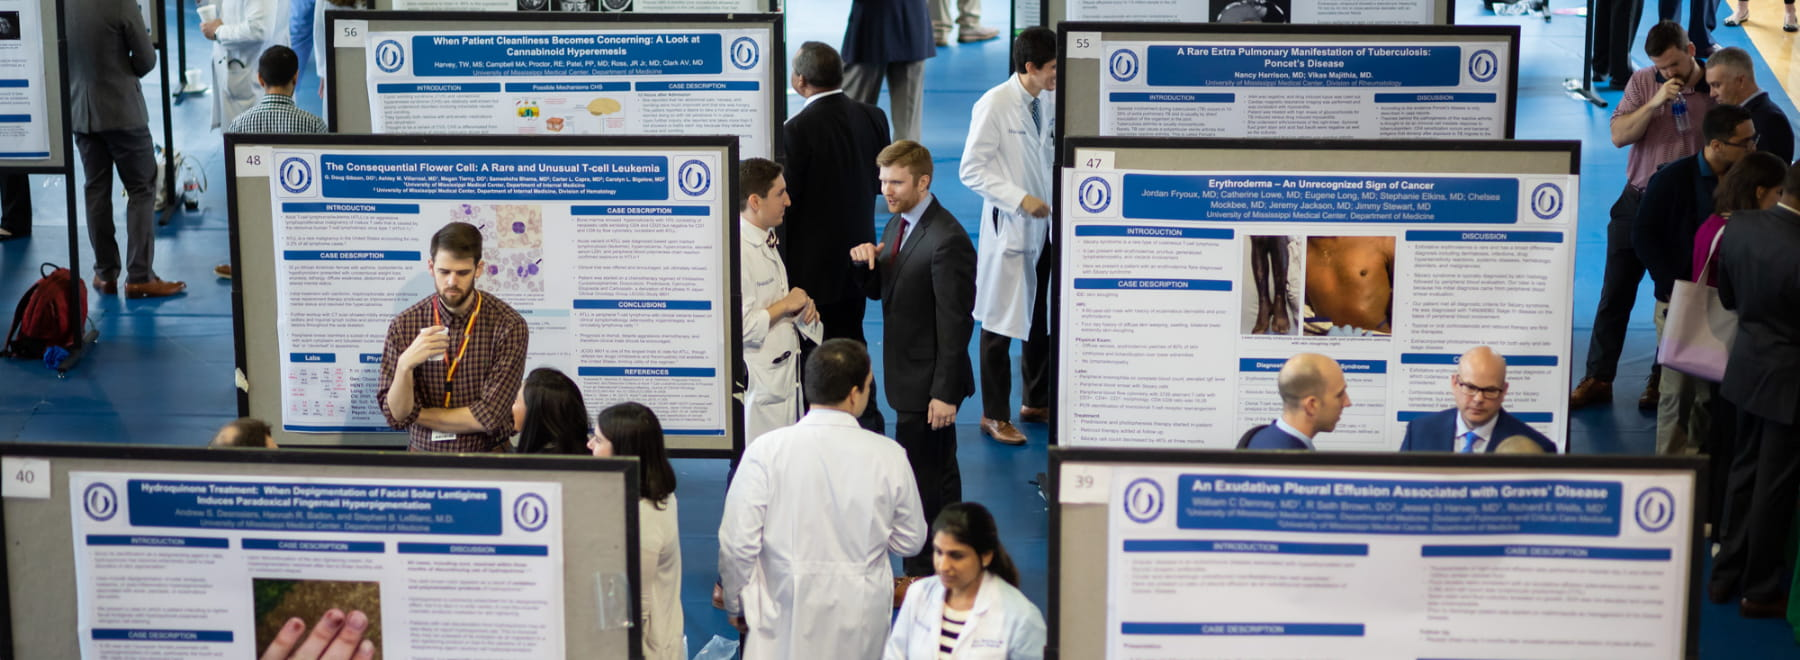 Research day crowd views project boards.